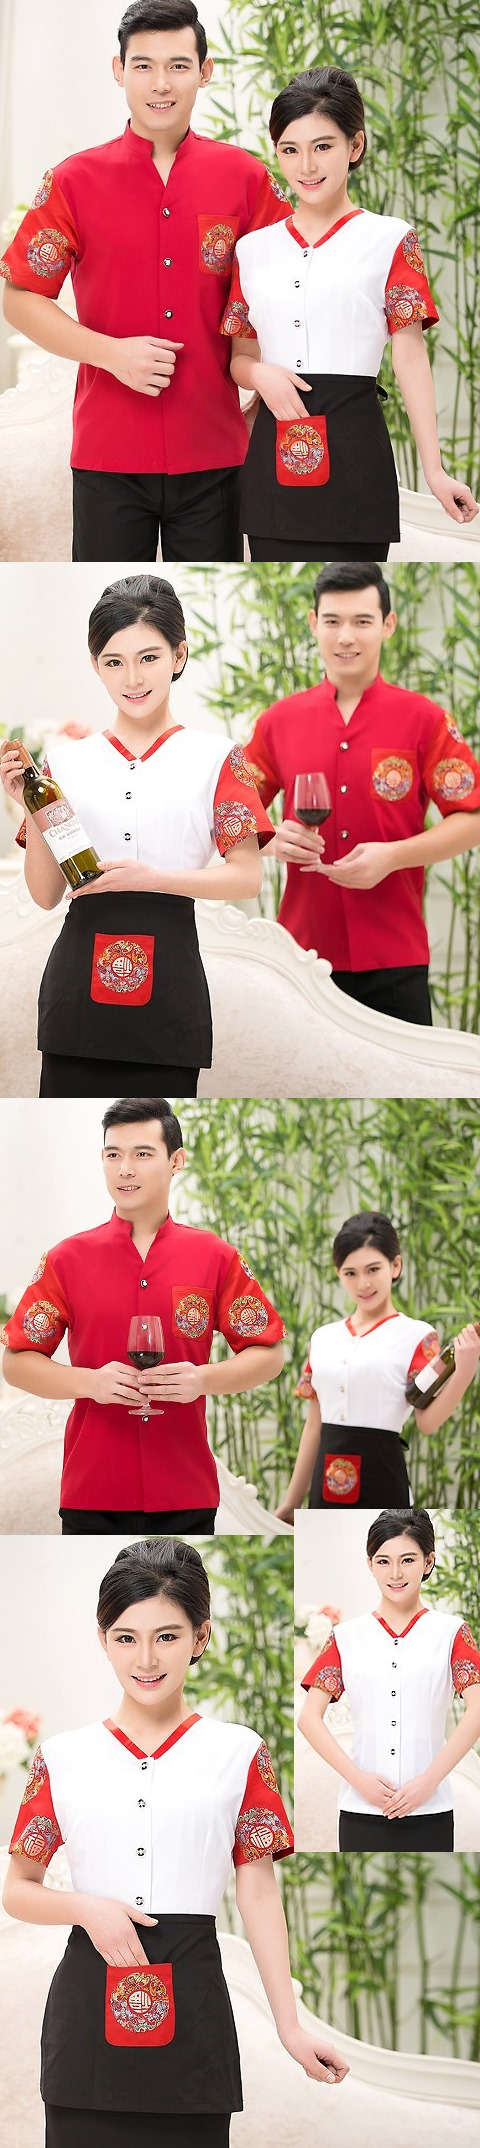 Mandarin Style Restaurant Uniform-Top (White)